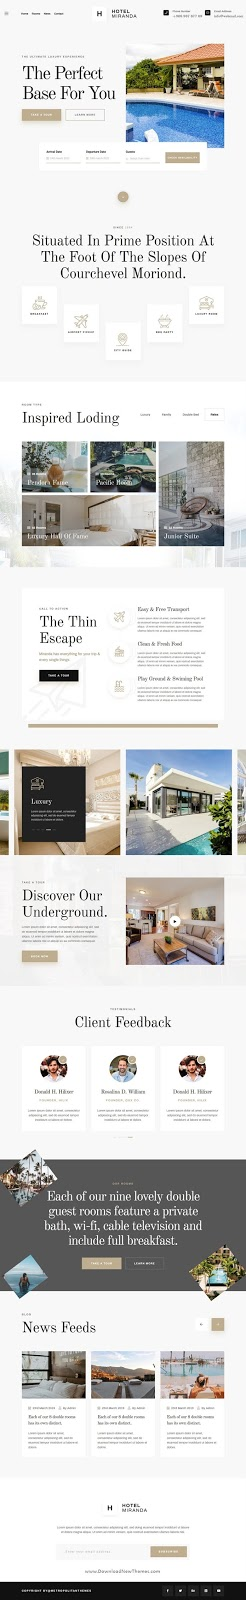 Download Hotel Booking Template